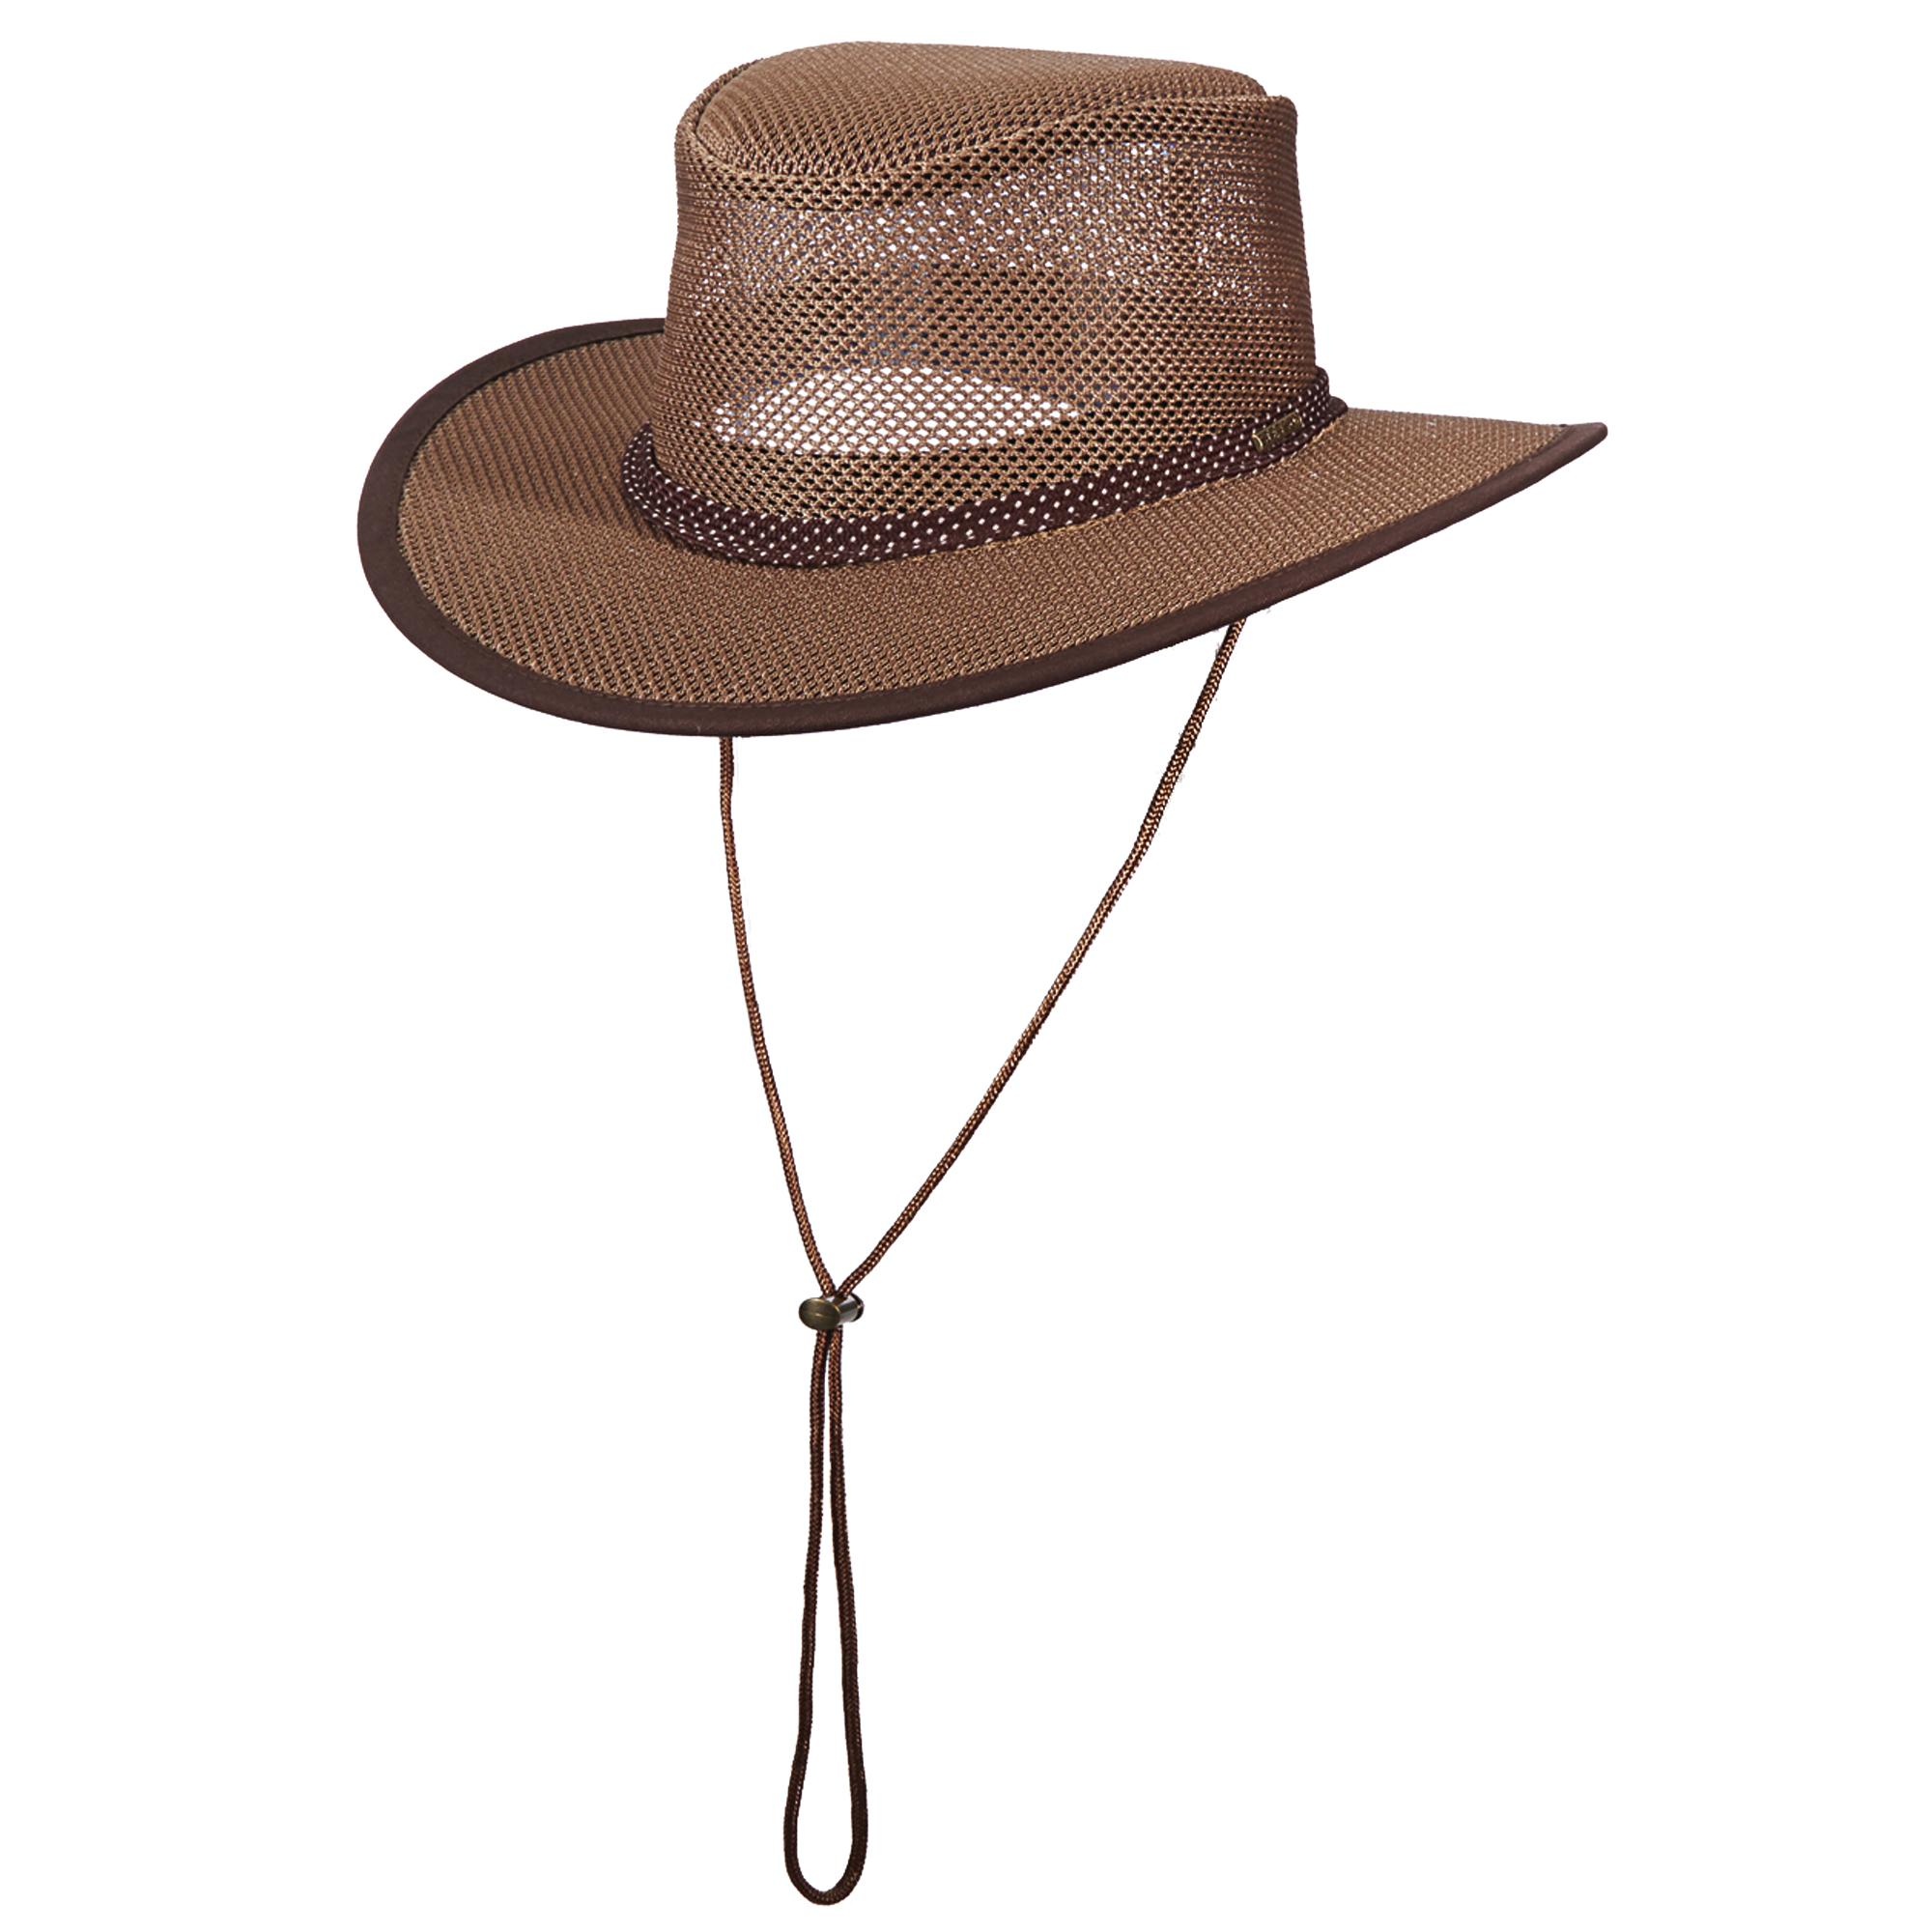 ee6845c25a9 Stetson Outback Meshed Safari Hat Walnut Stc205-wlnt Large